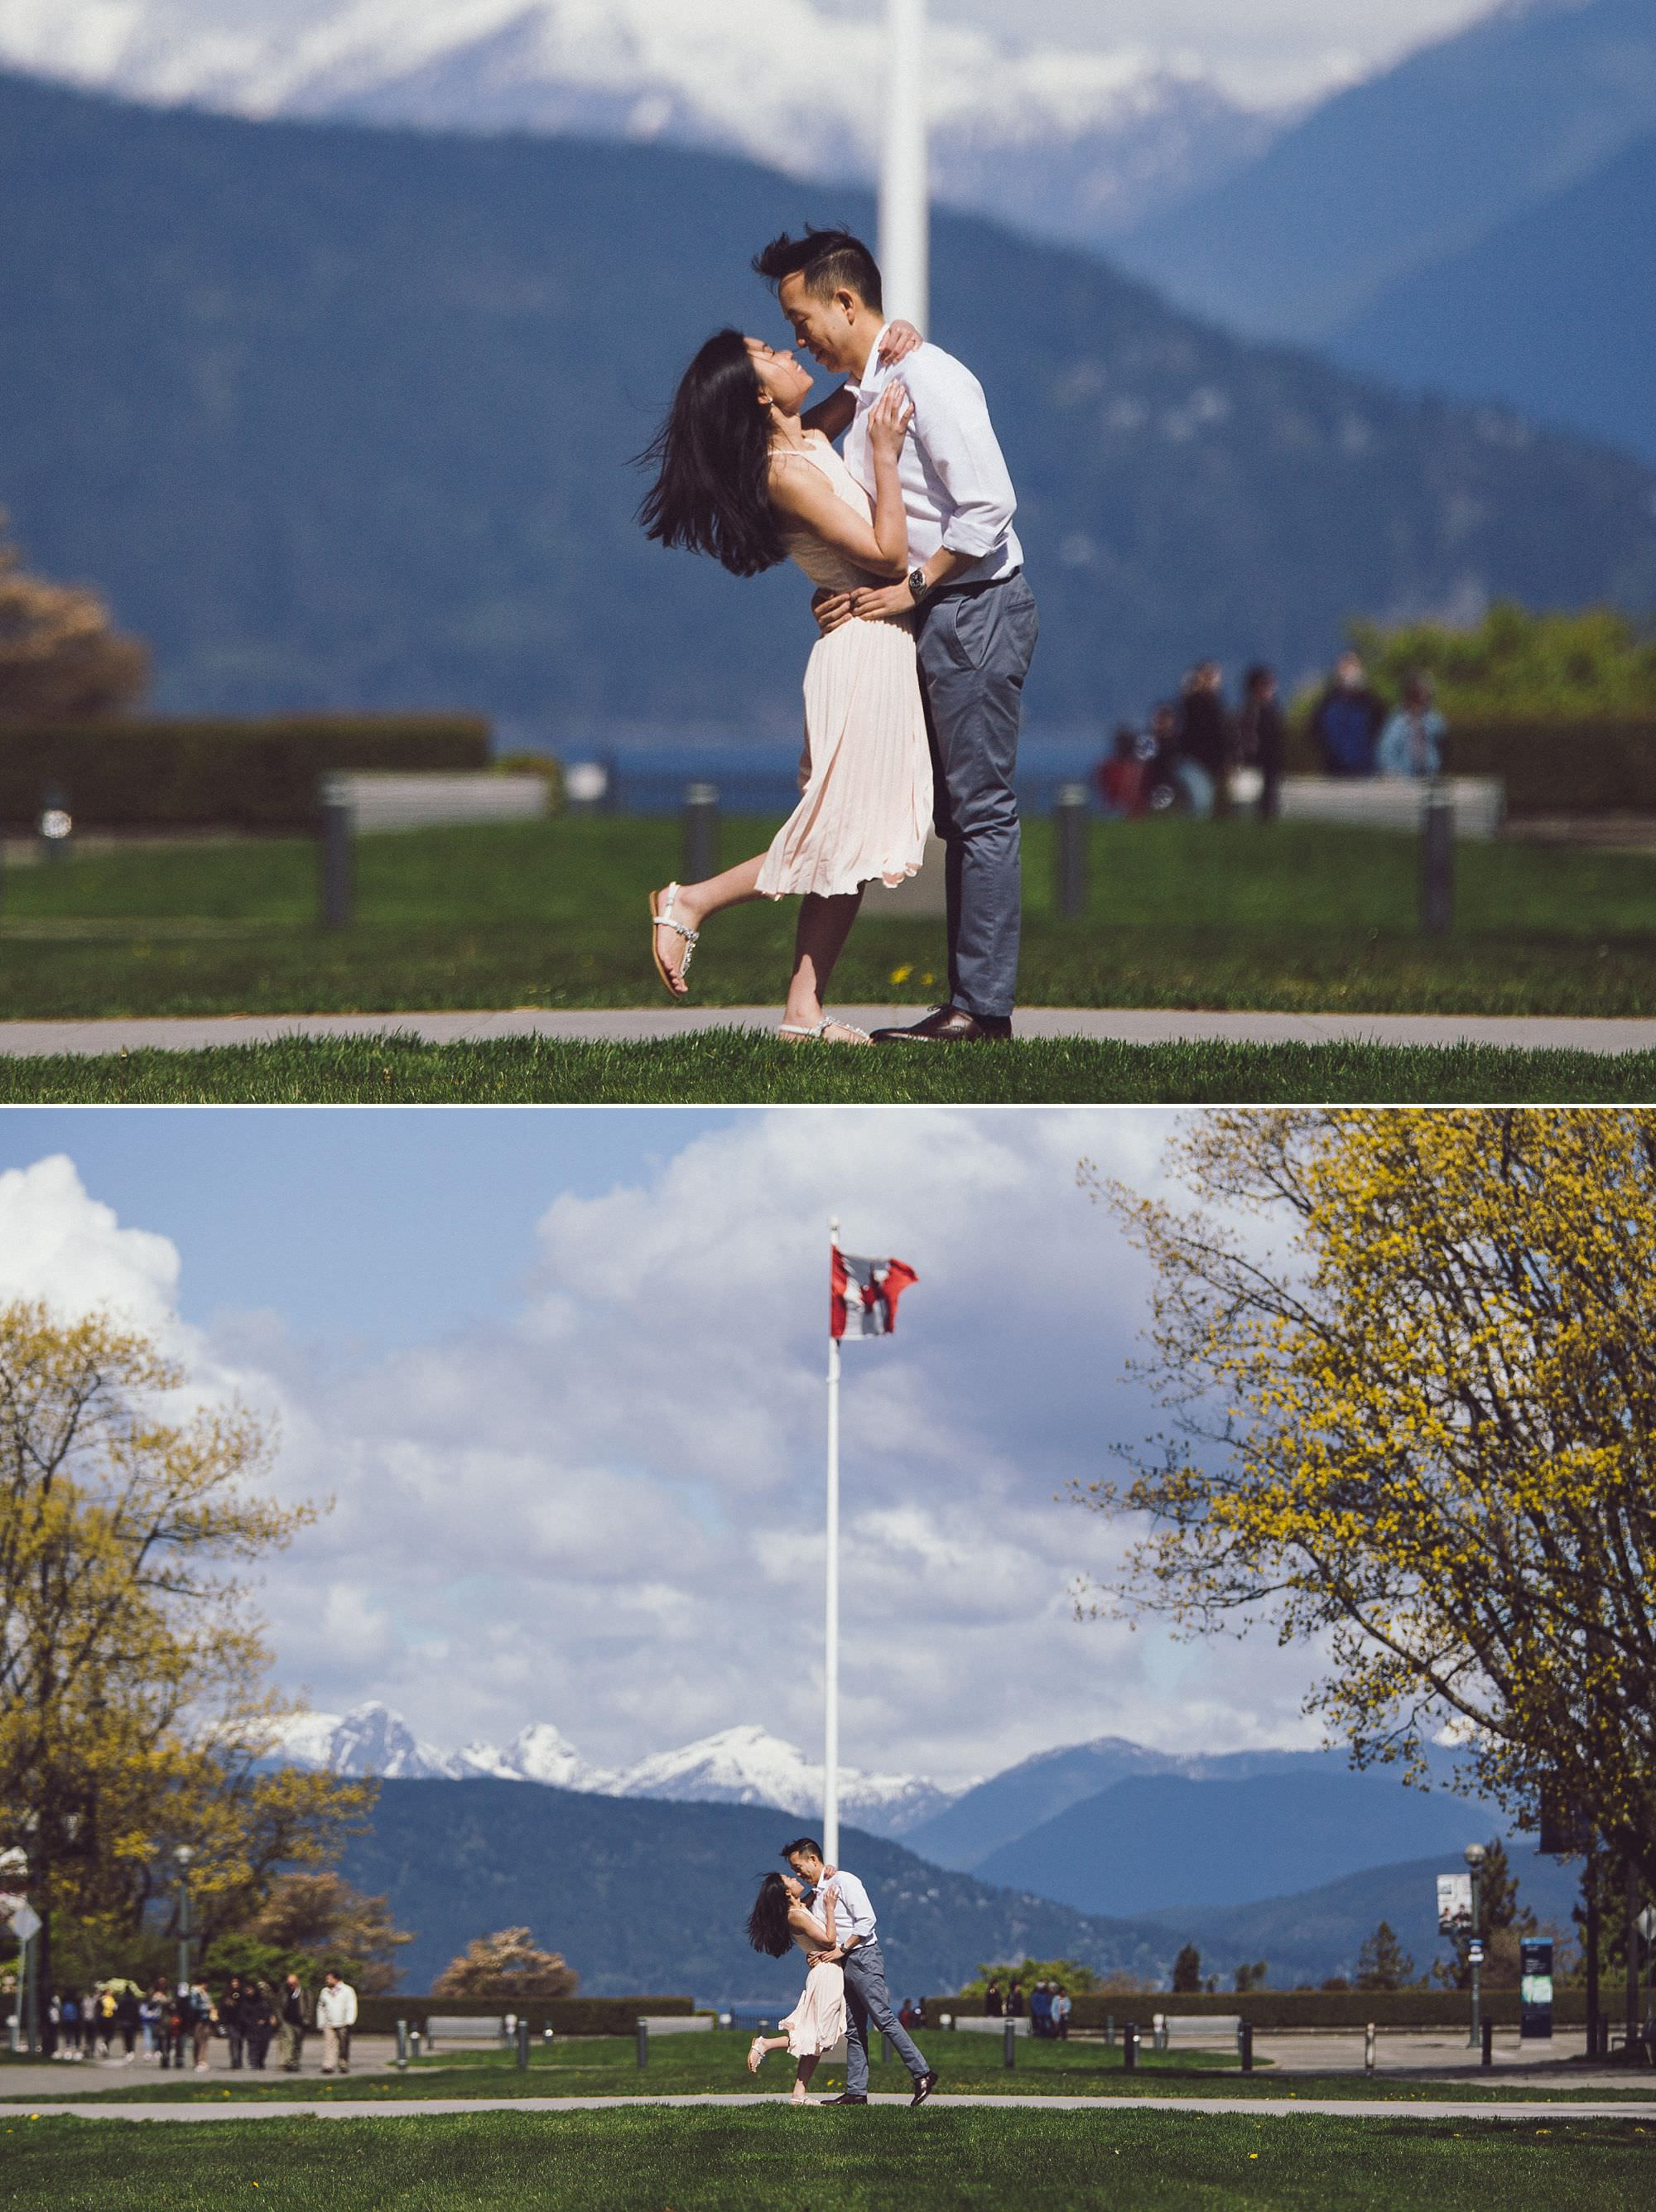 And of course, we had to end the session in front of the flag pole, with the snow-capped mountains in the background!